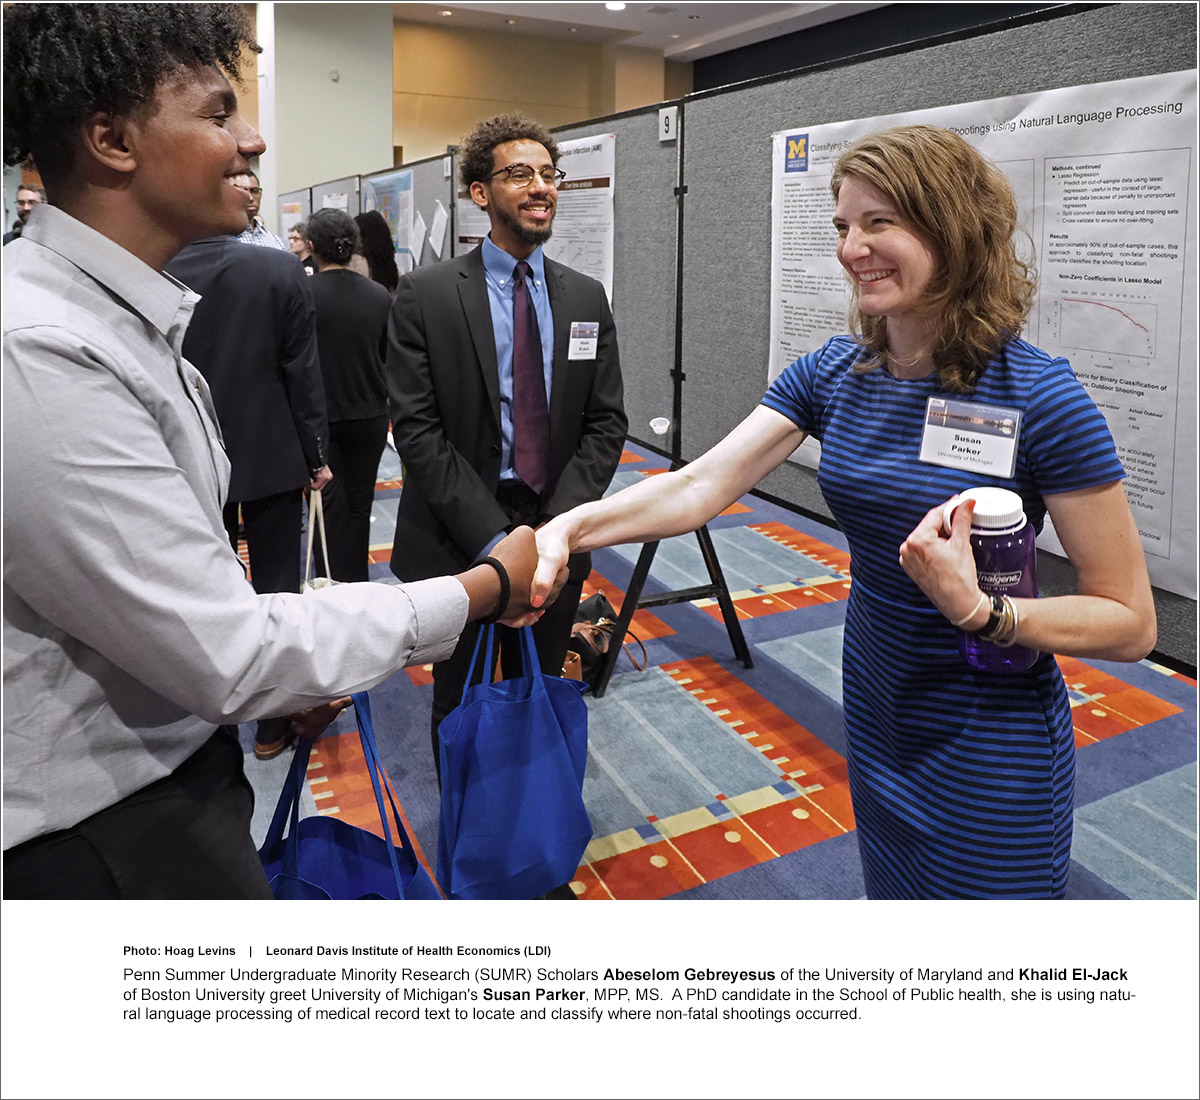 Immersing Penn SUMR Scholars in Annual AHRQ NRSA Conference | LDI